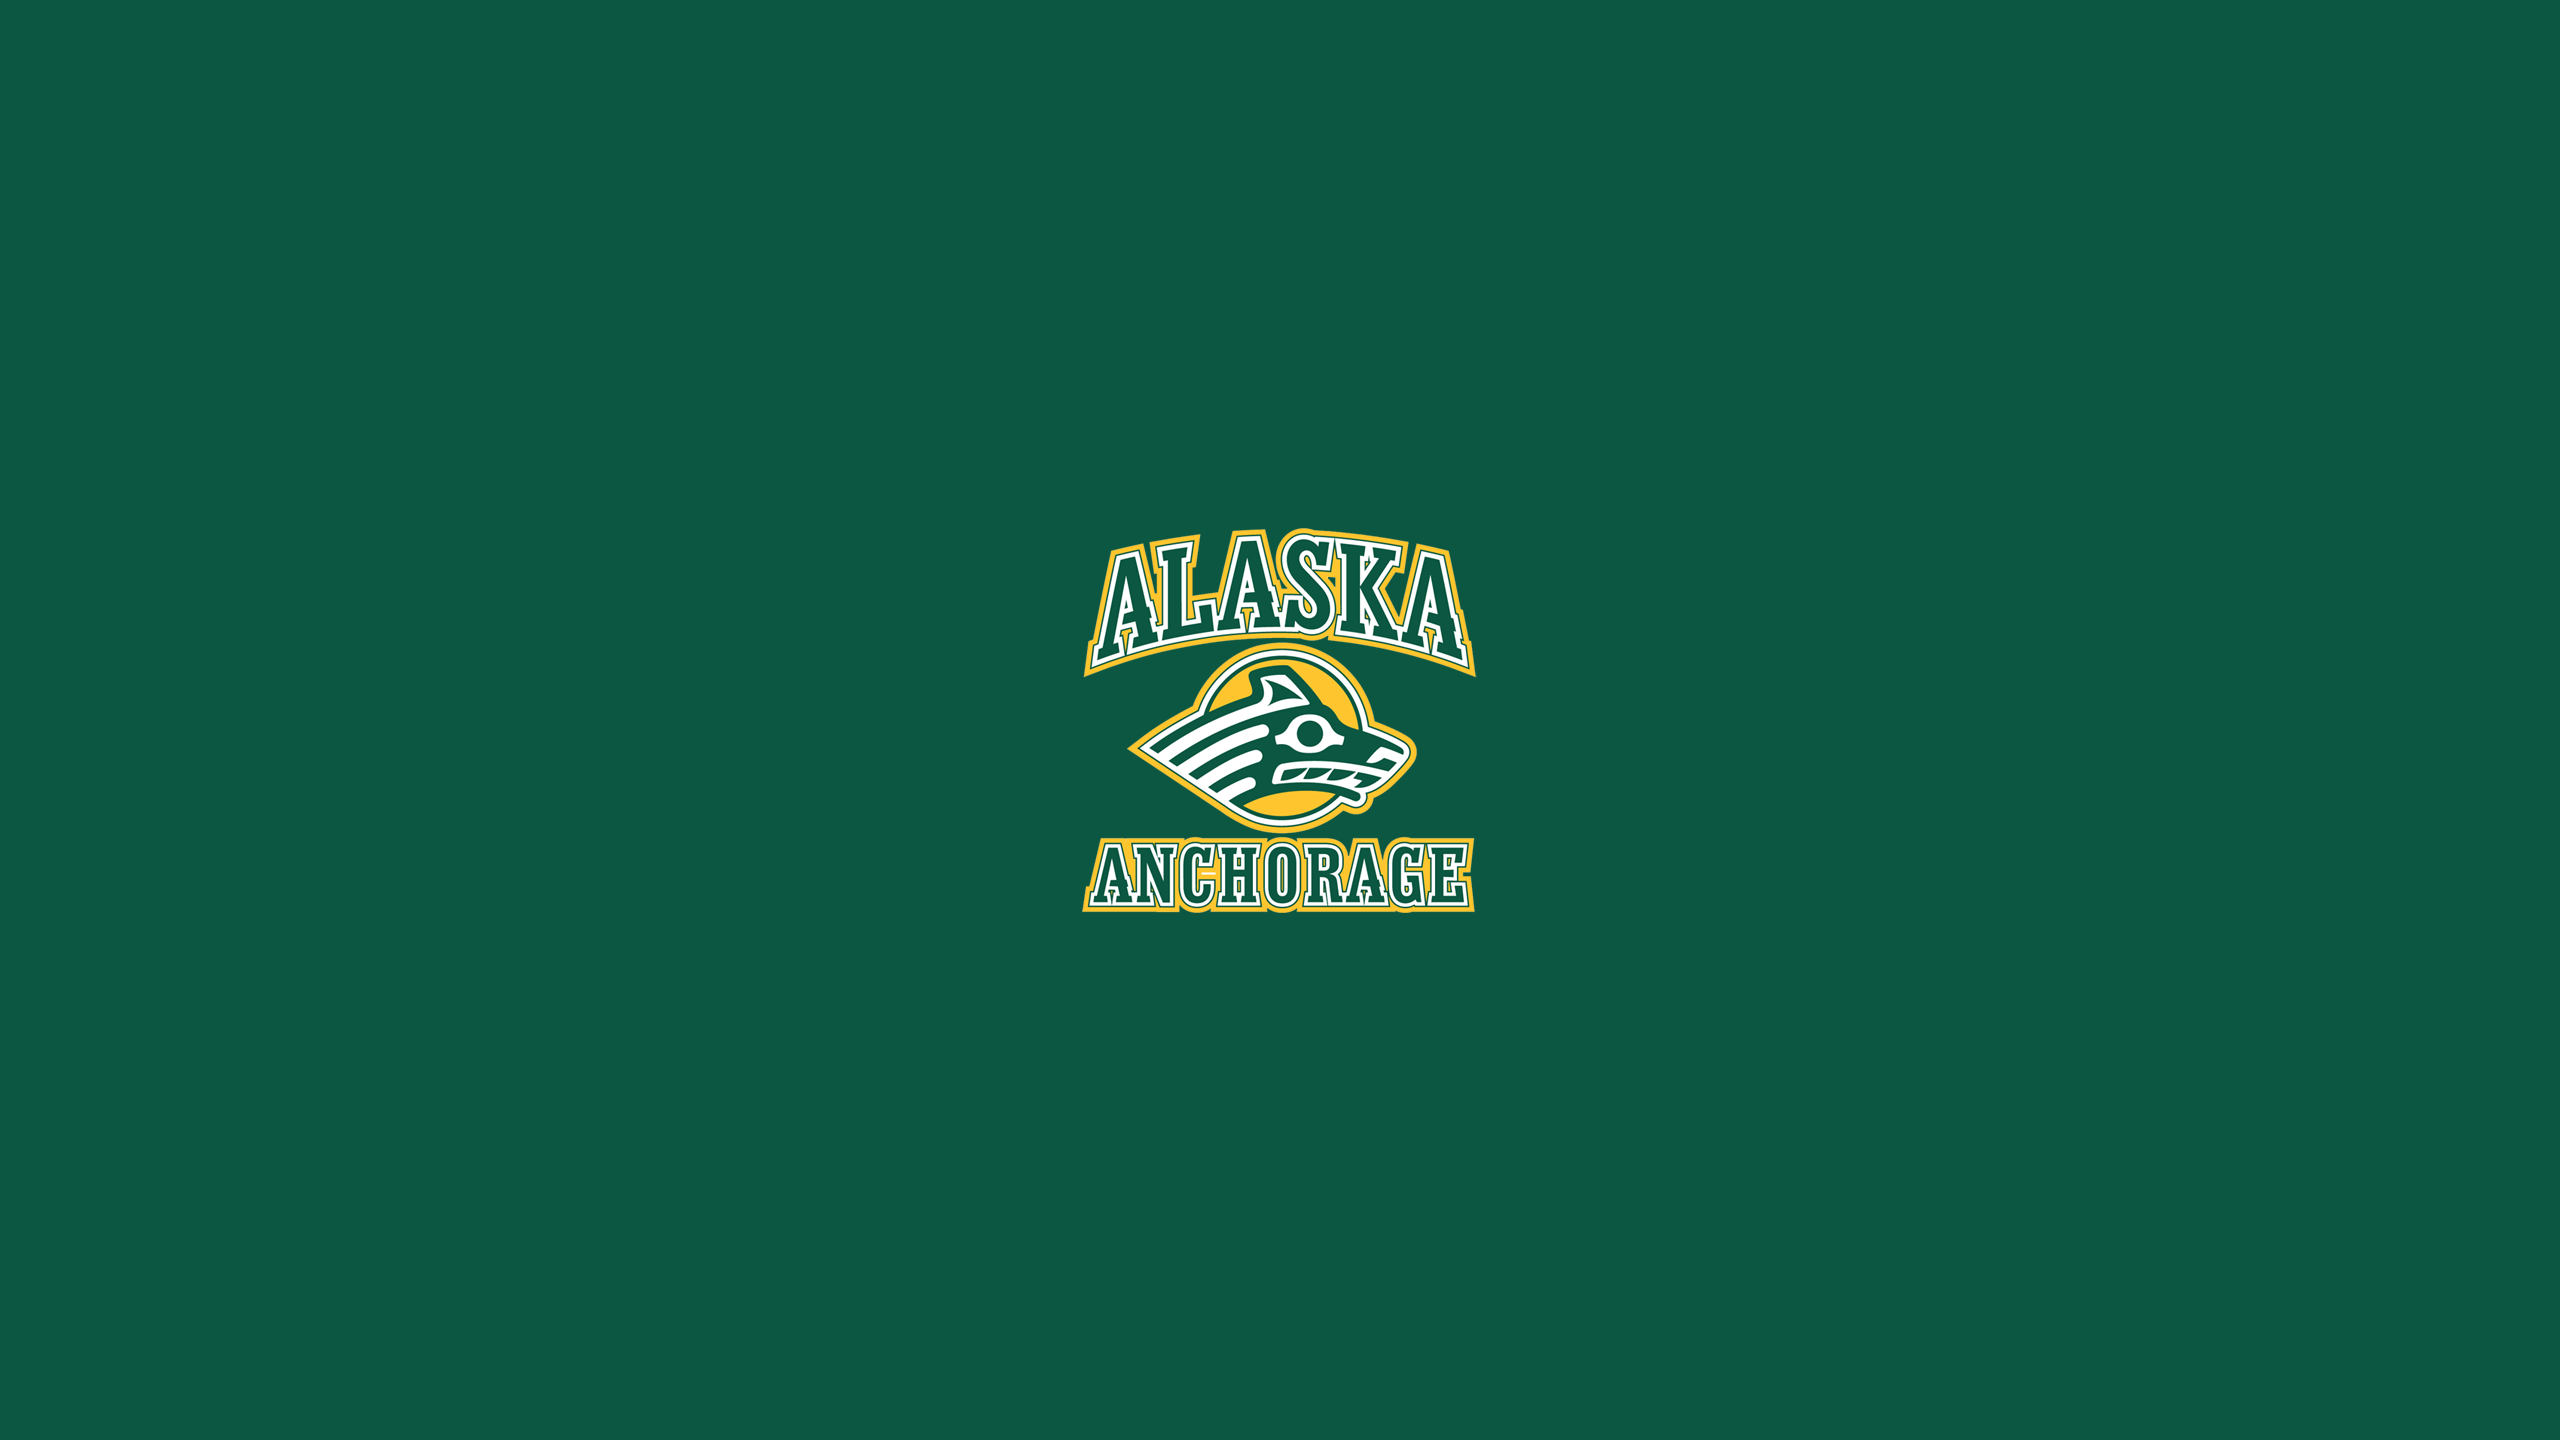 University of Alaska (Anchorage) Seawolves